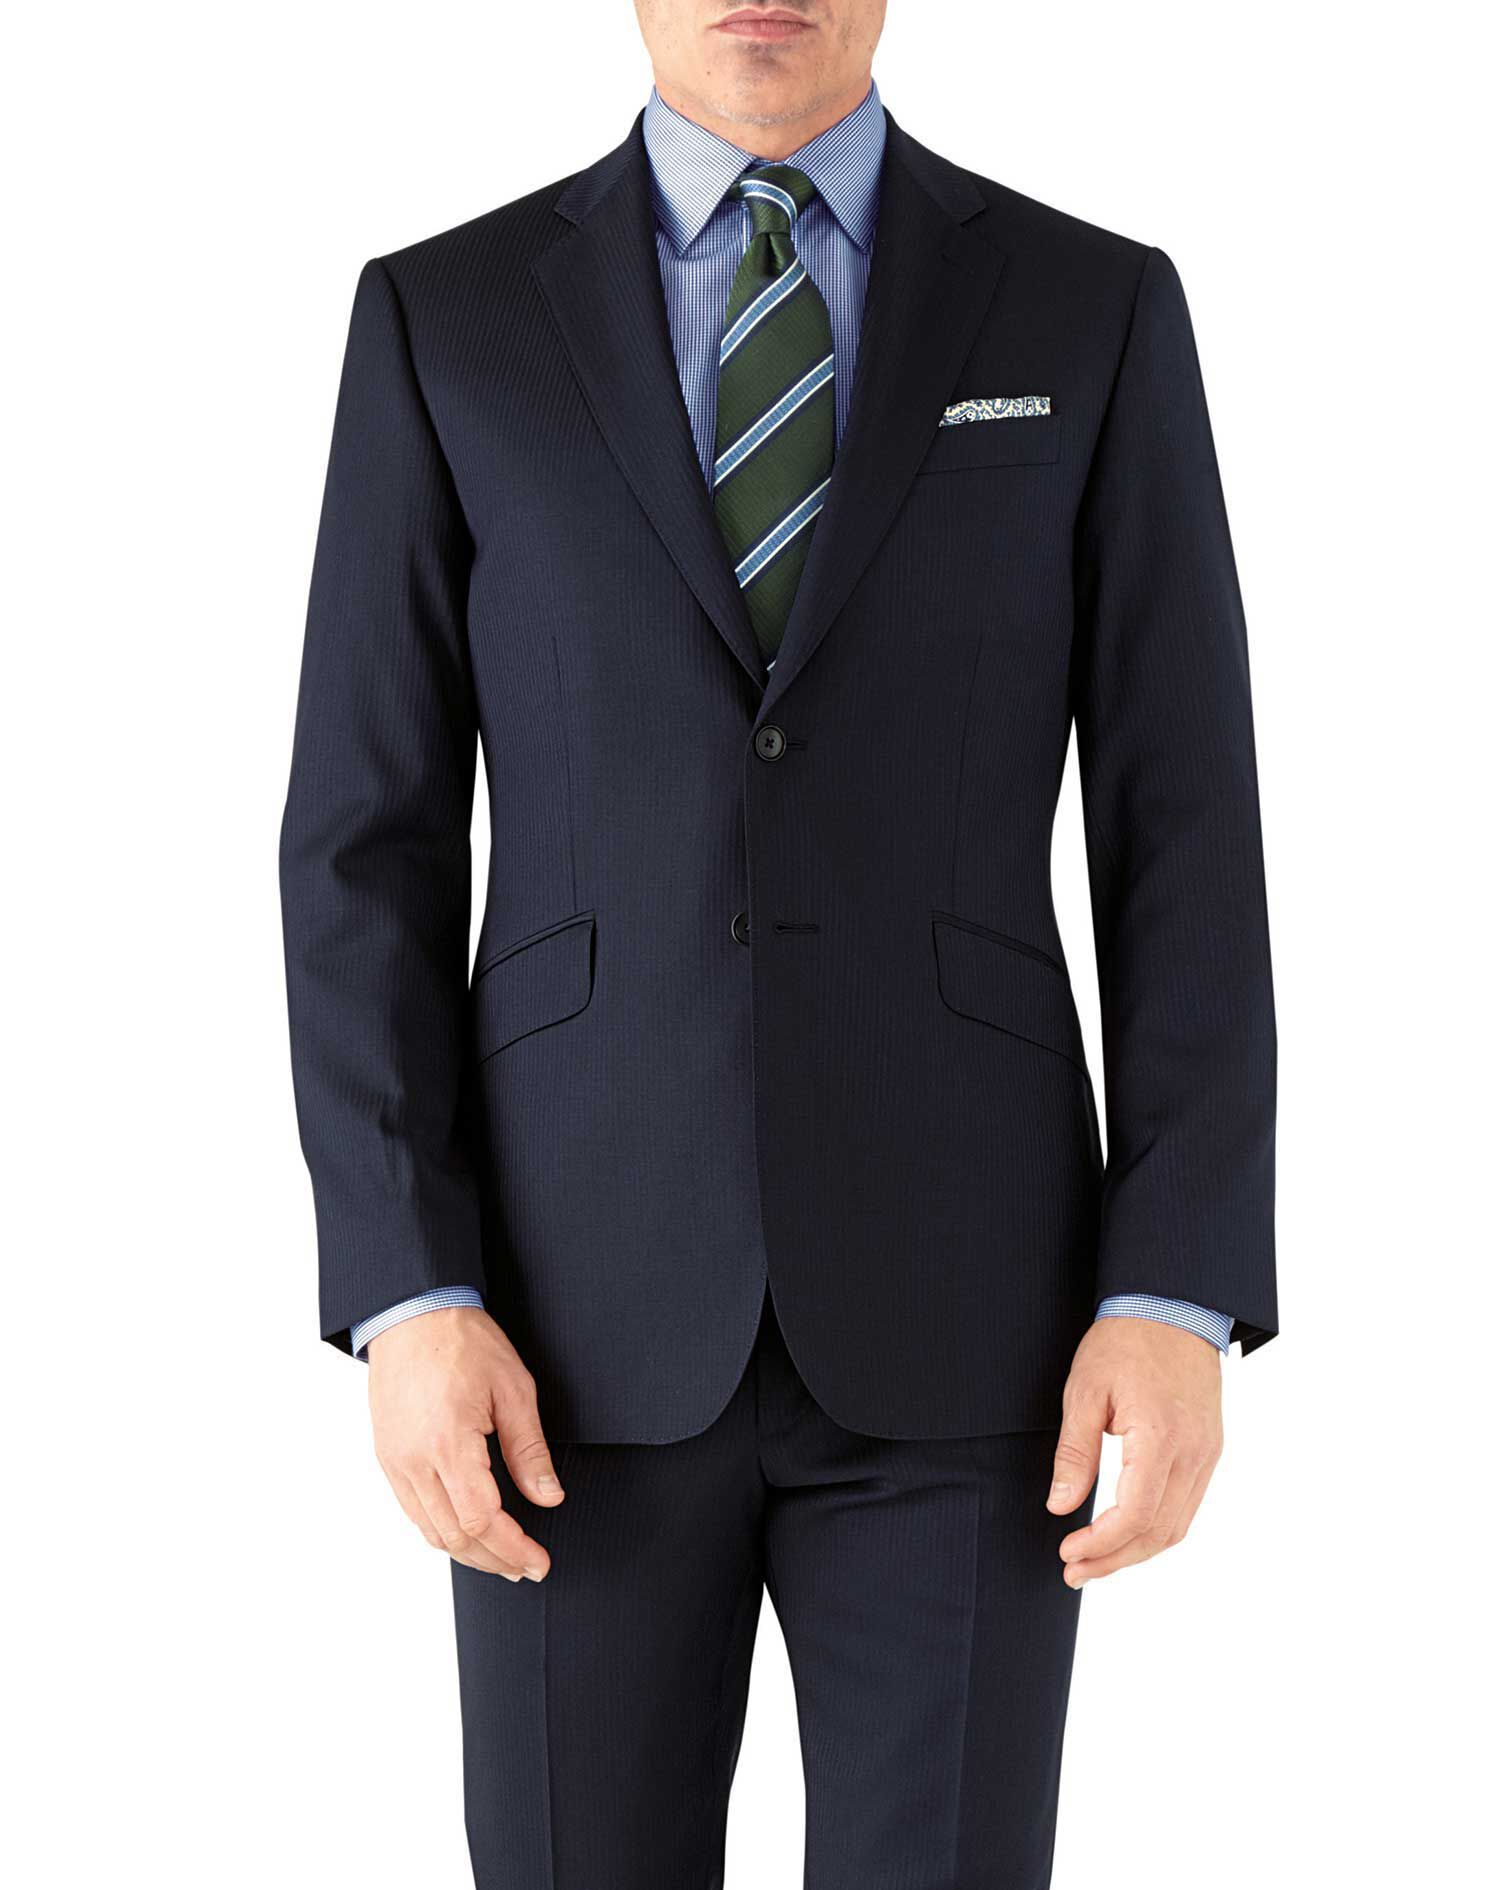 Navy Herringbone Classic Fit Italian Suit Wool Jacket Size 44 Short by Charles Tyrwhitt